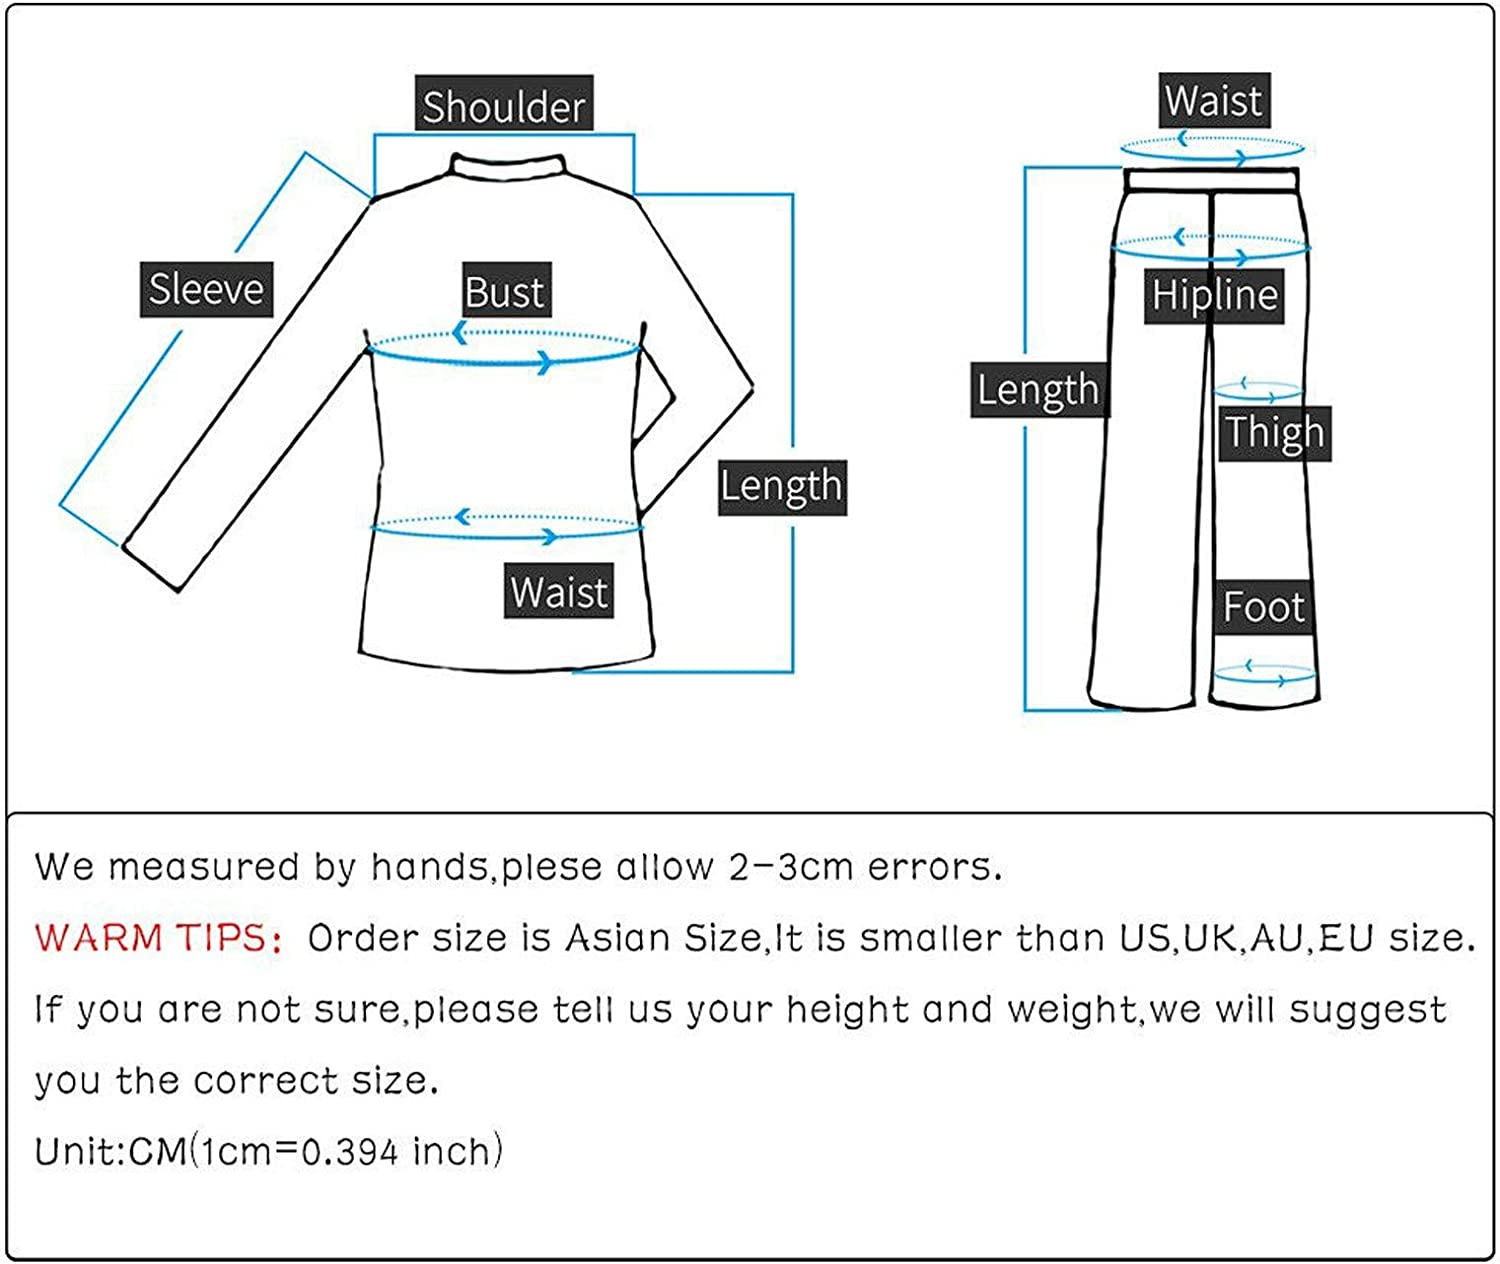 Women's Oversized Blouse Top Casual Long Sleeve Round Neck Cute Graphic Plus Size Sweatshirt Pullover Tunic Tops